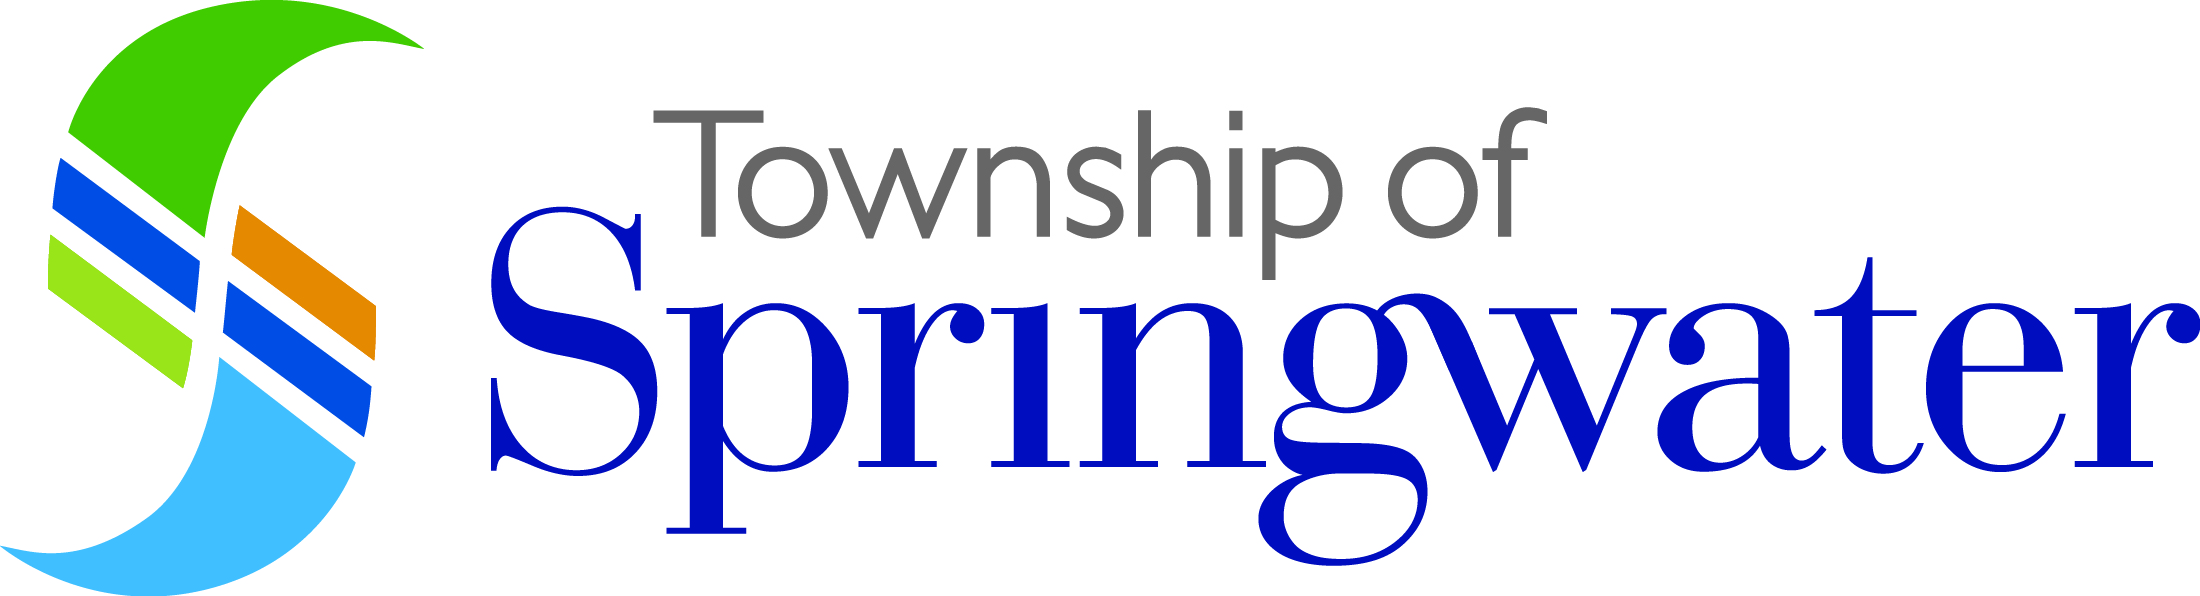 Township of Springwater